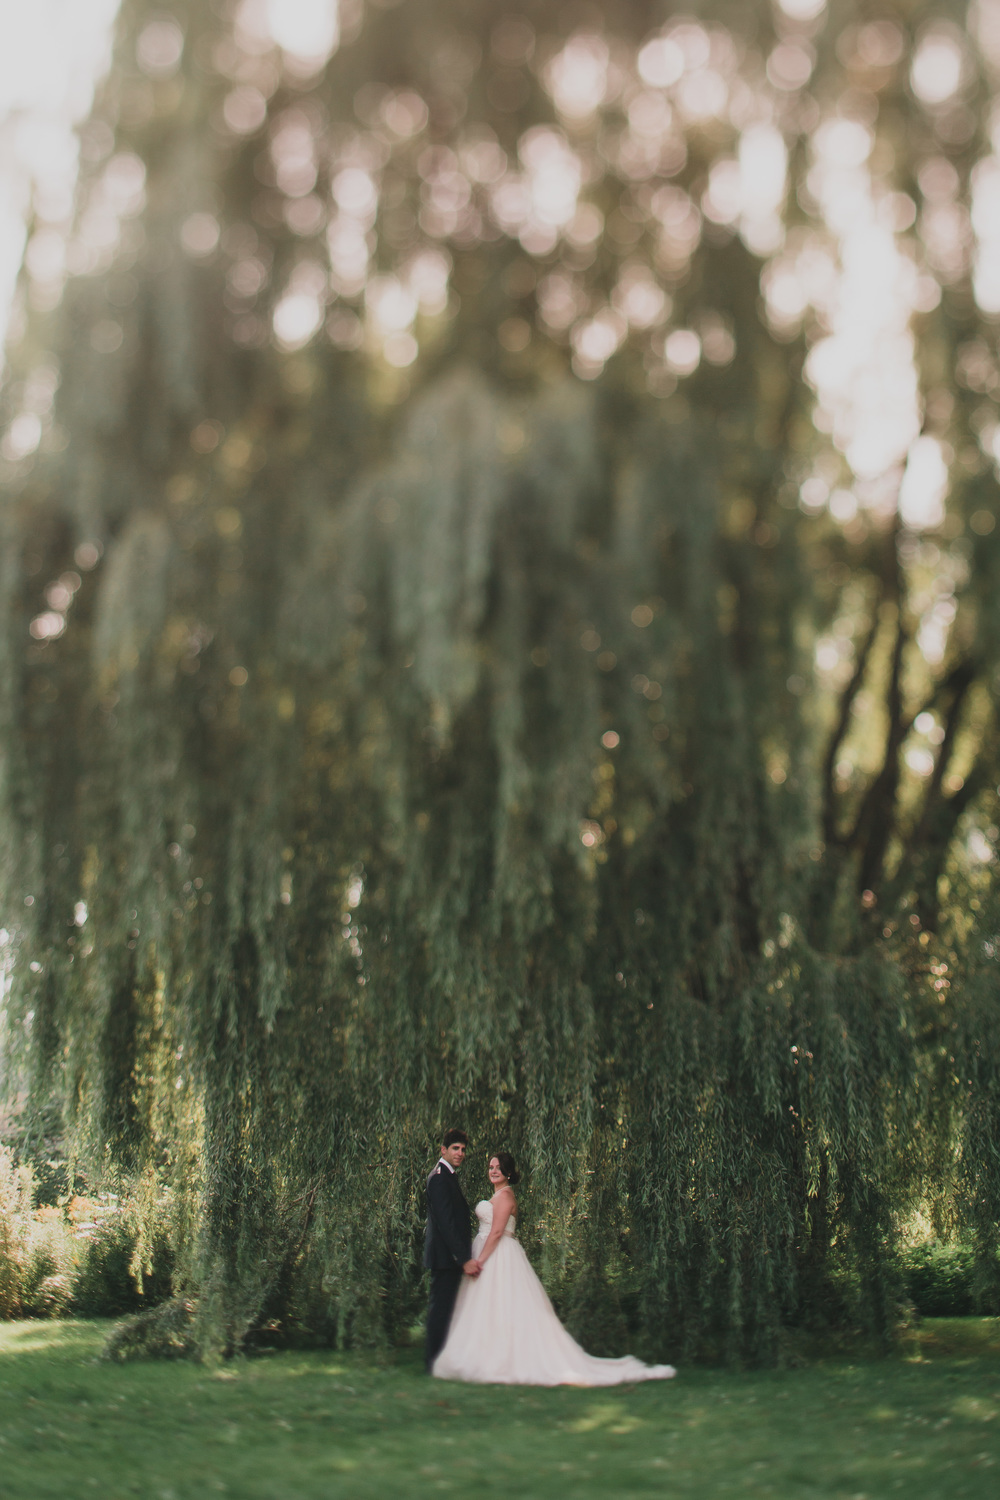 32-willow-tree-wedding-portrait.jpg